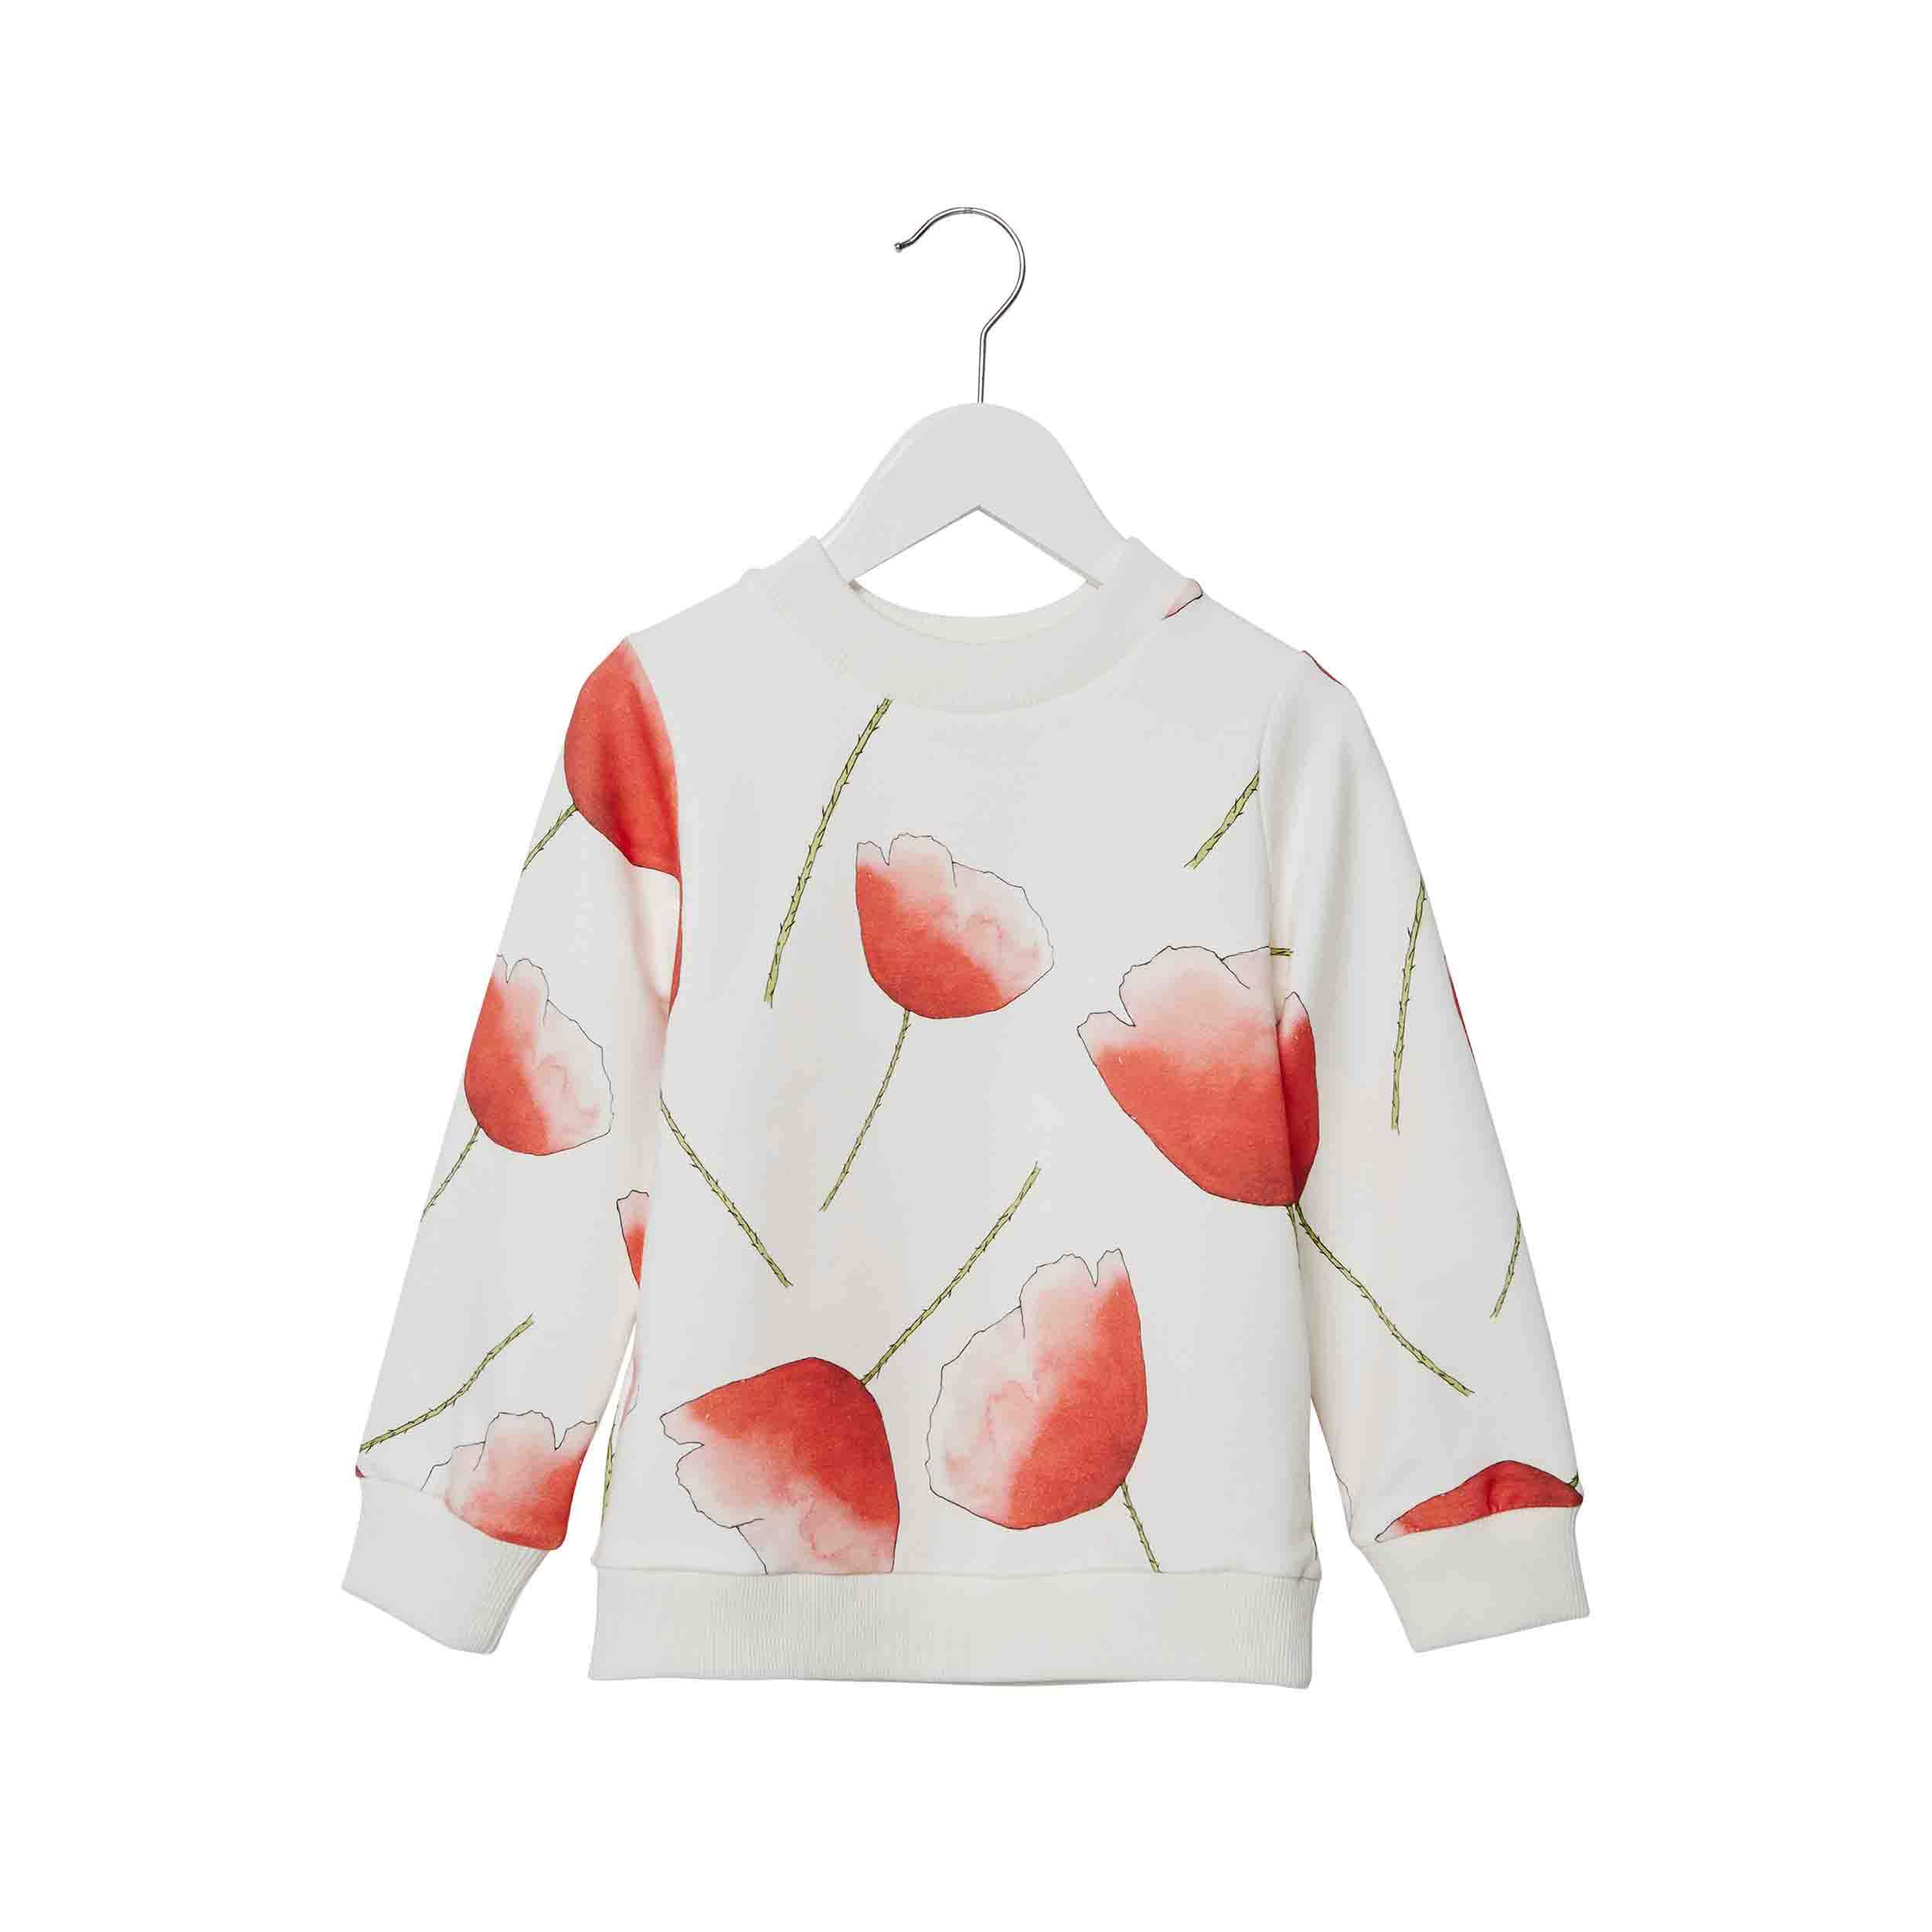 pepeandnika presents wawa copenhagen kidsbrand summerclothes floral Sweatshirt for girls and boys organic